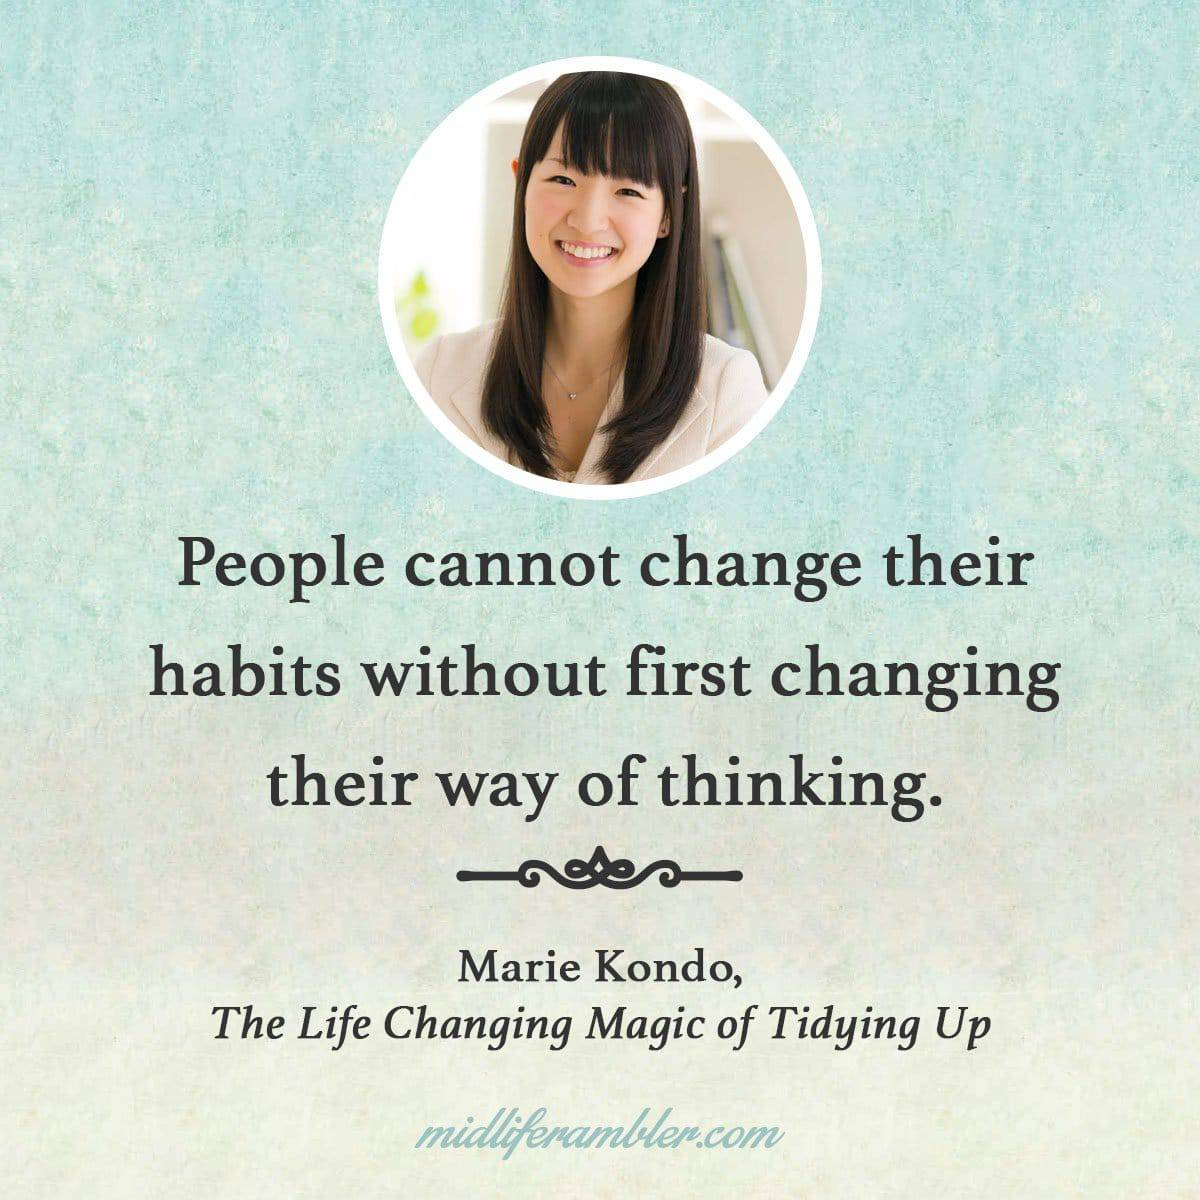 5 Tips for Tidying Up You Won't Learn from Marie Kondo's Netflix Show - People cannot change their habits without first changing their way of thinking - Marie Kondo, The Life Changing Magic of Tidying Up